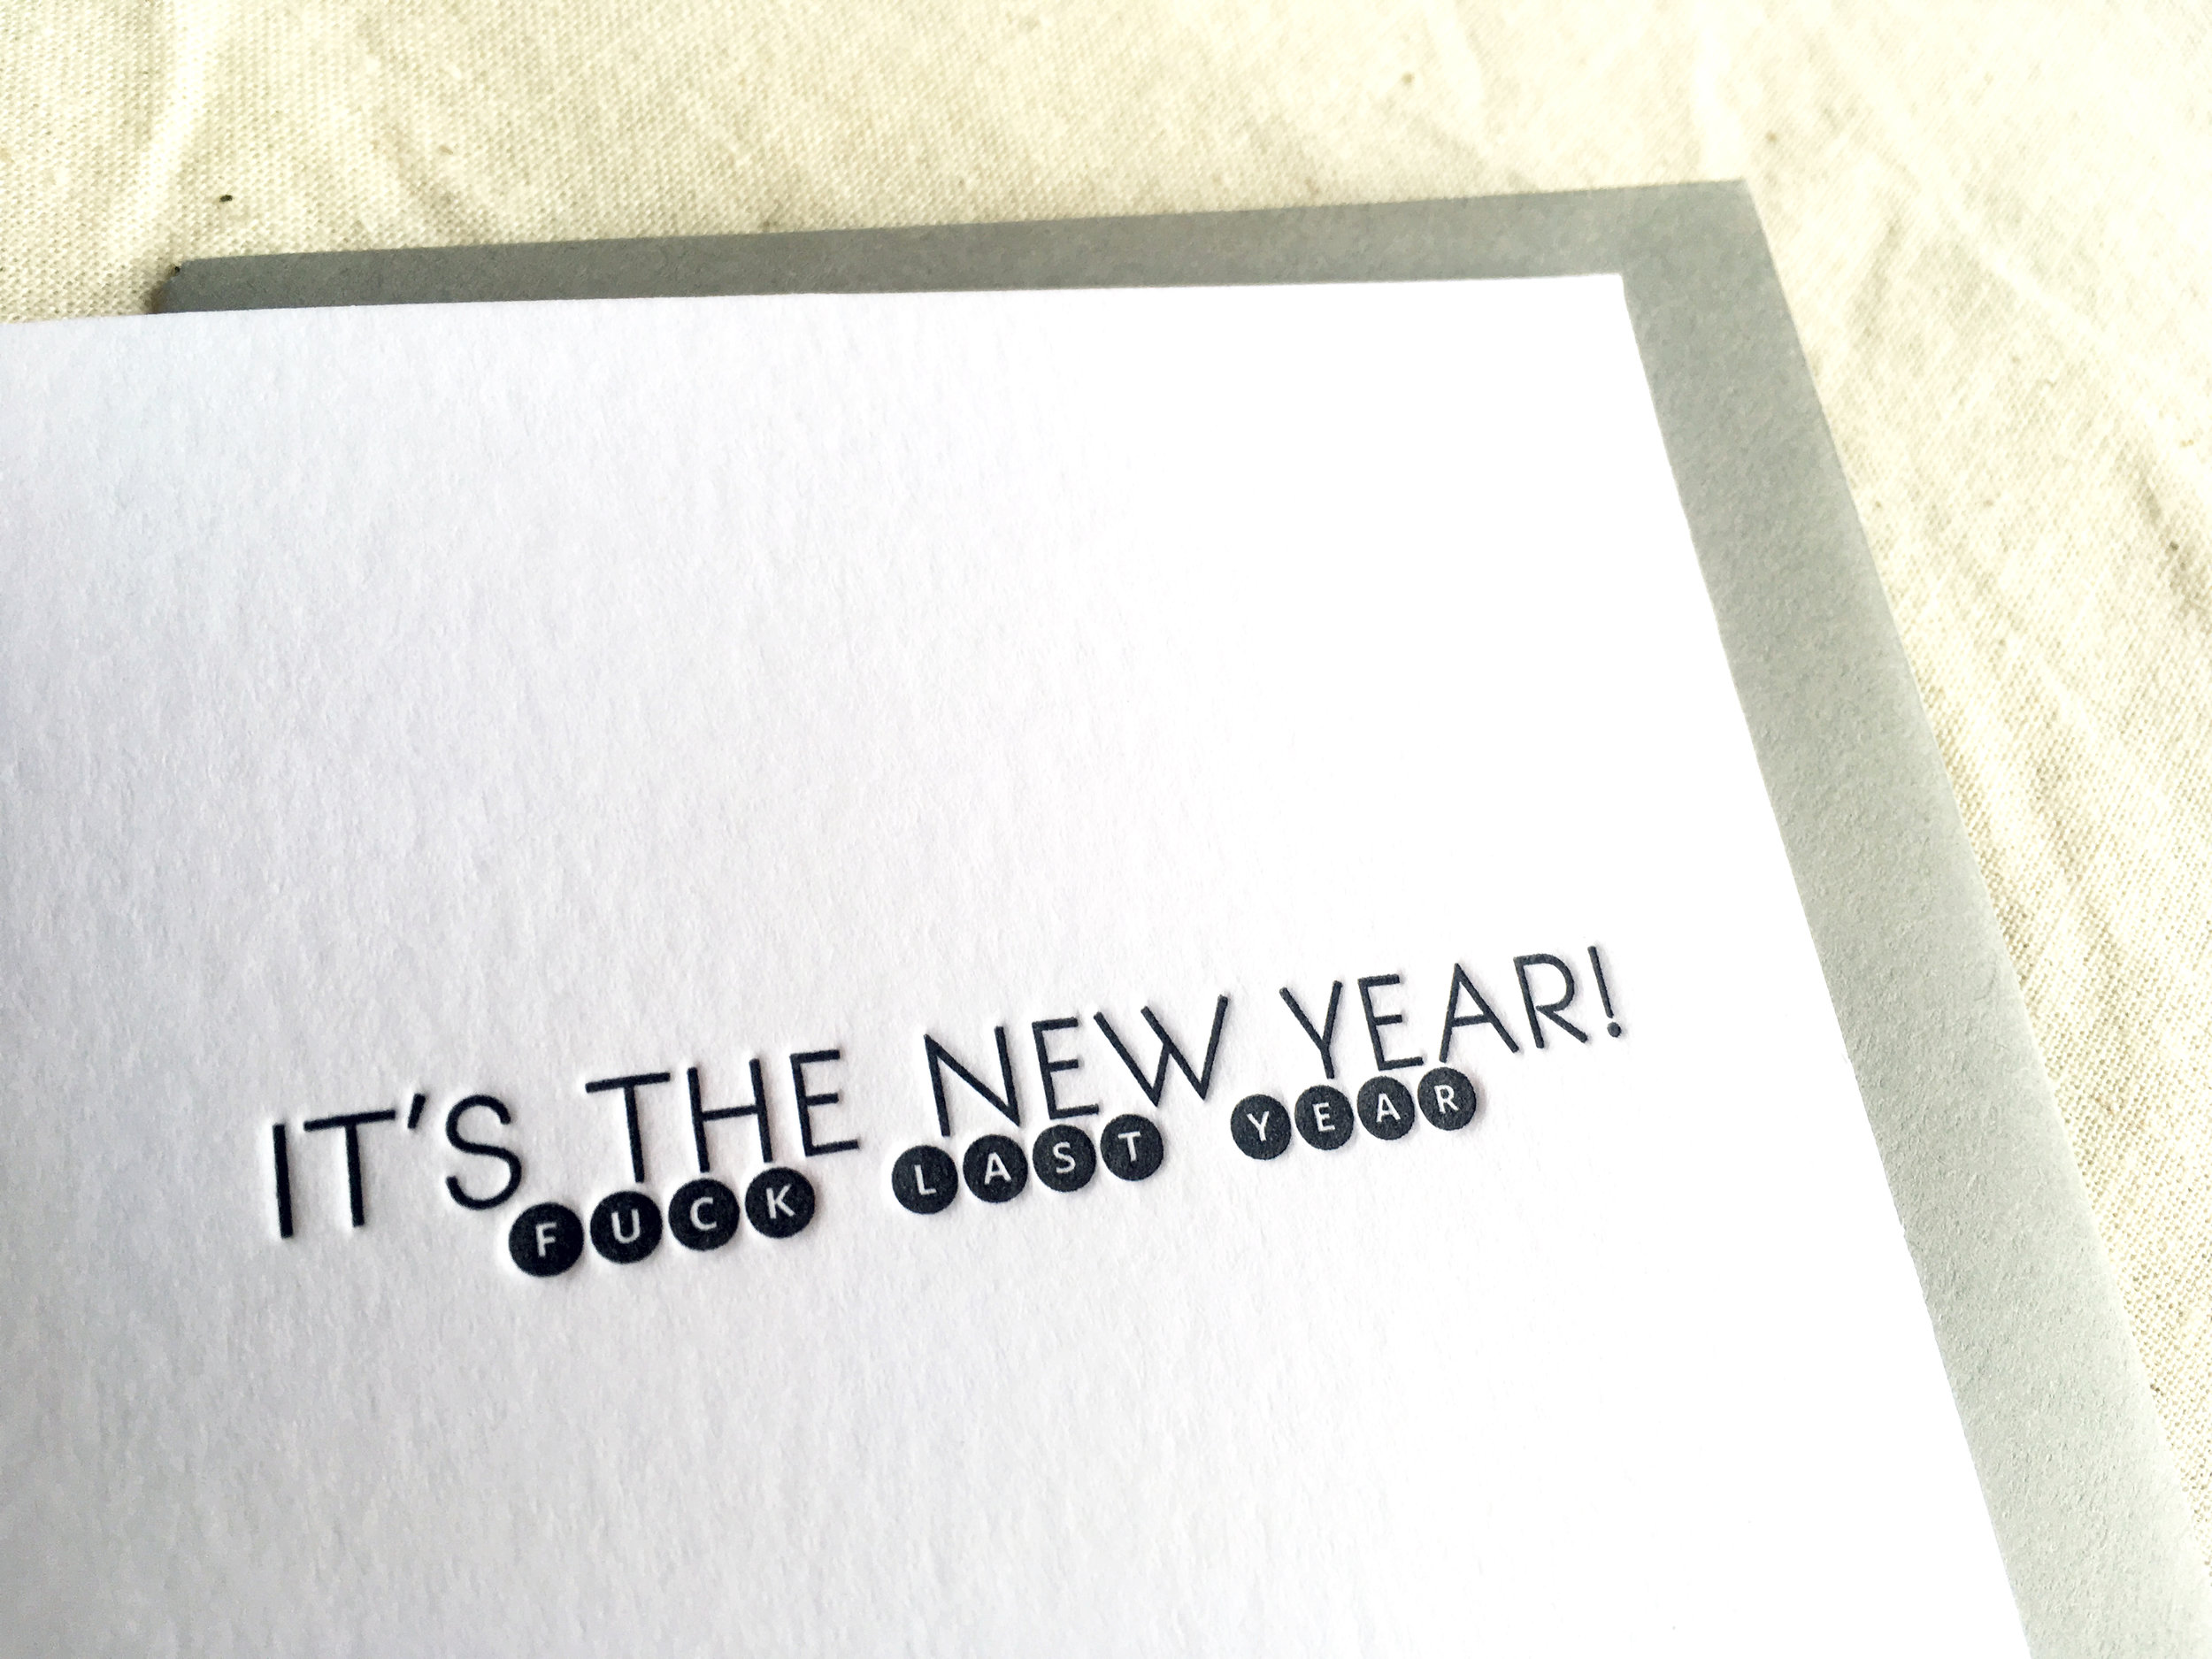 Also, I'm totally feeling these cards we printed at  Darling Press ... jes' sayin'.